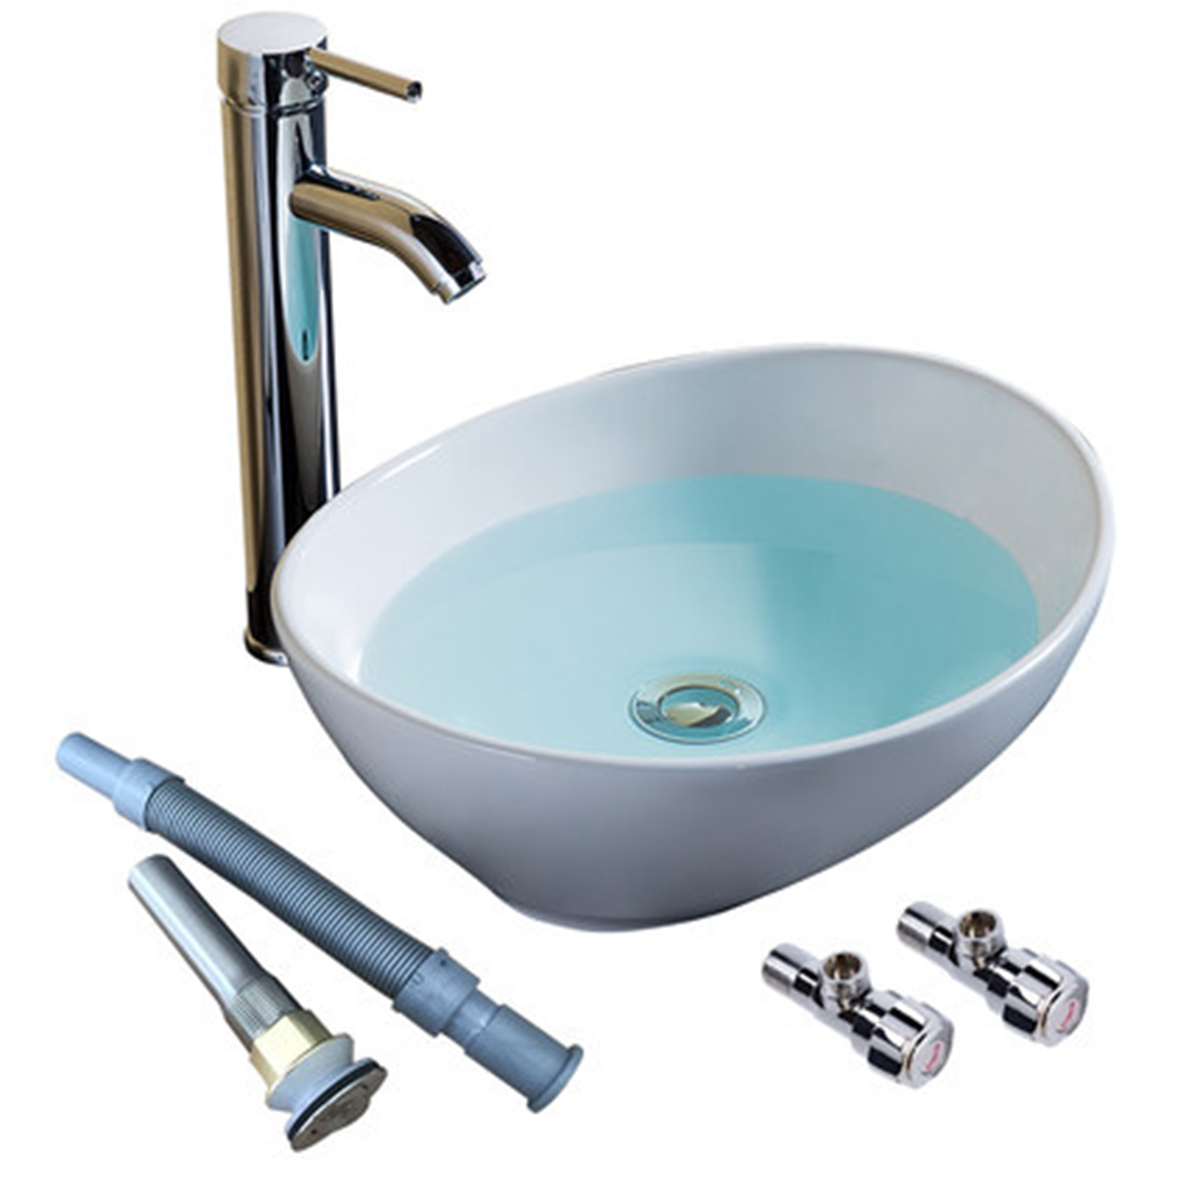 Sinks Amp Taps Bathroom Oval Vessel Sink Vanity Countertop